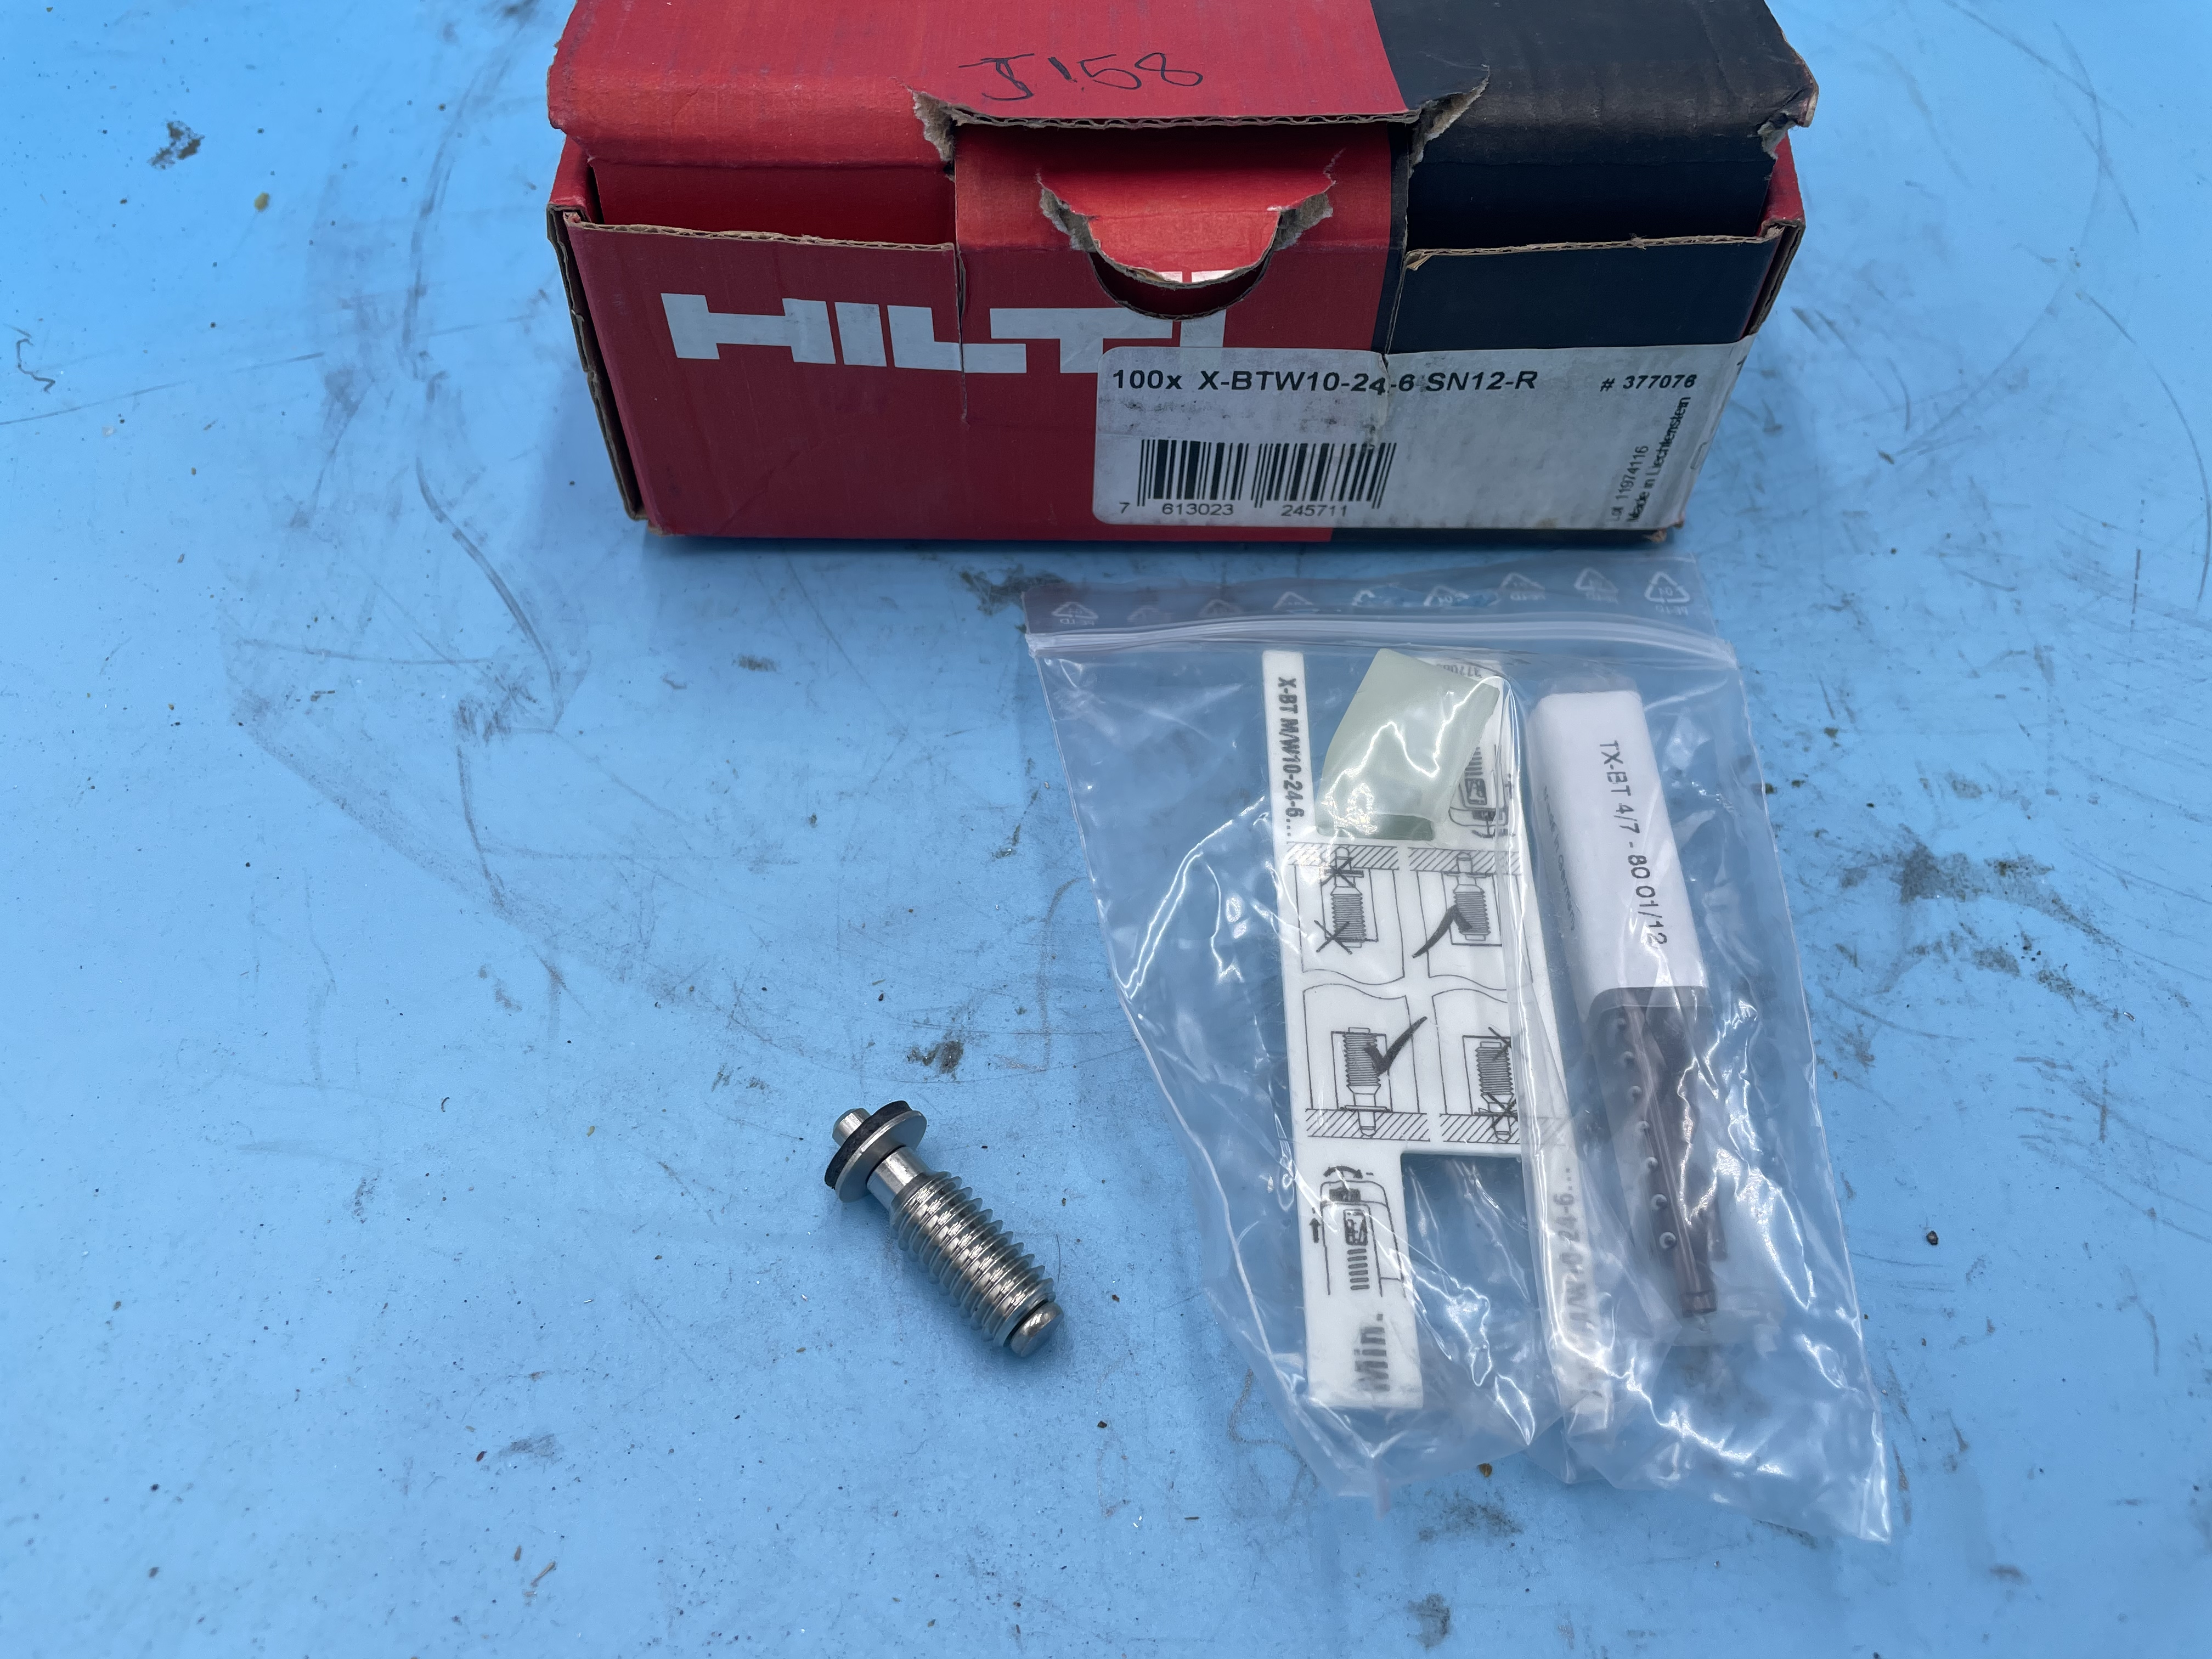 Hilti X-Btw10-24-6SN12-R Stud Fasteners *LOT OF 100*